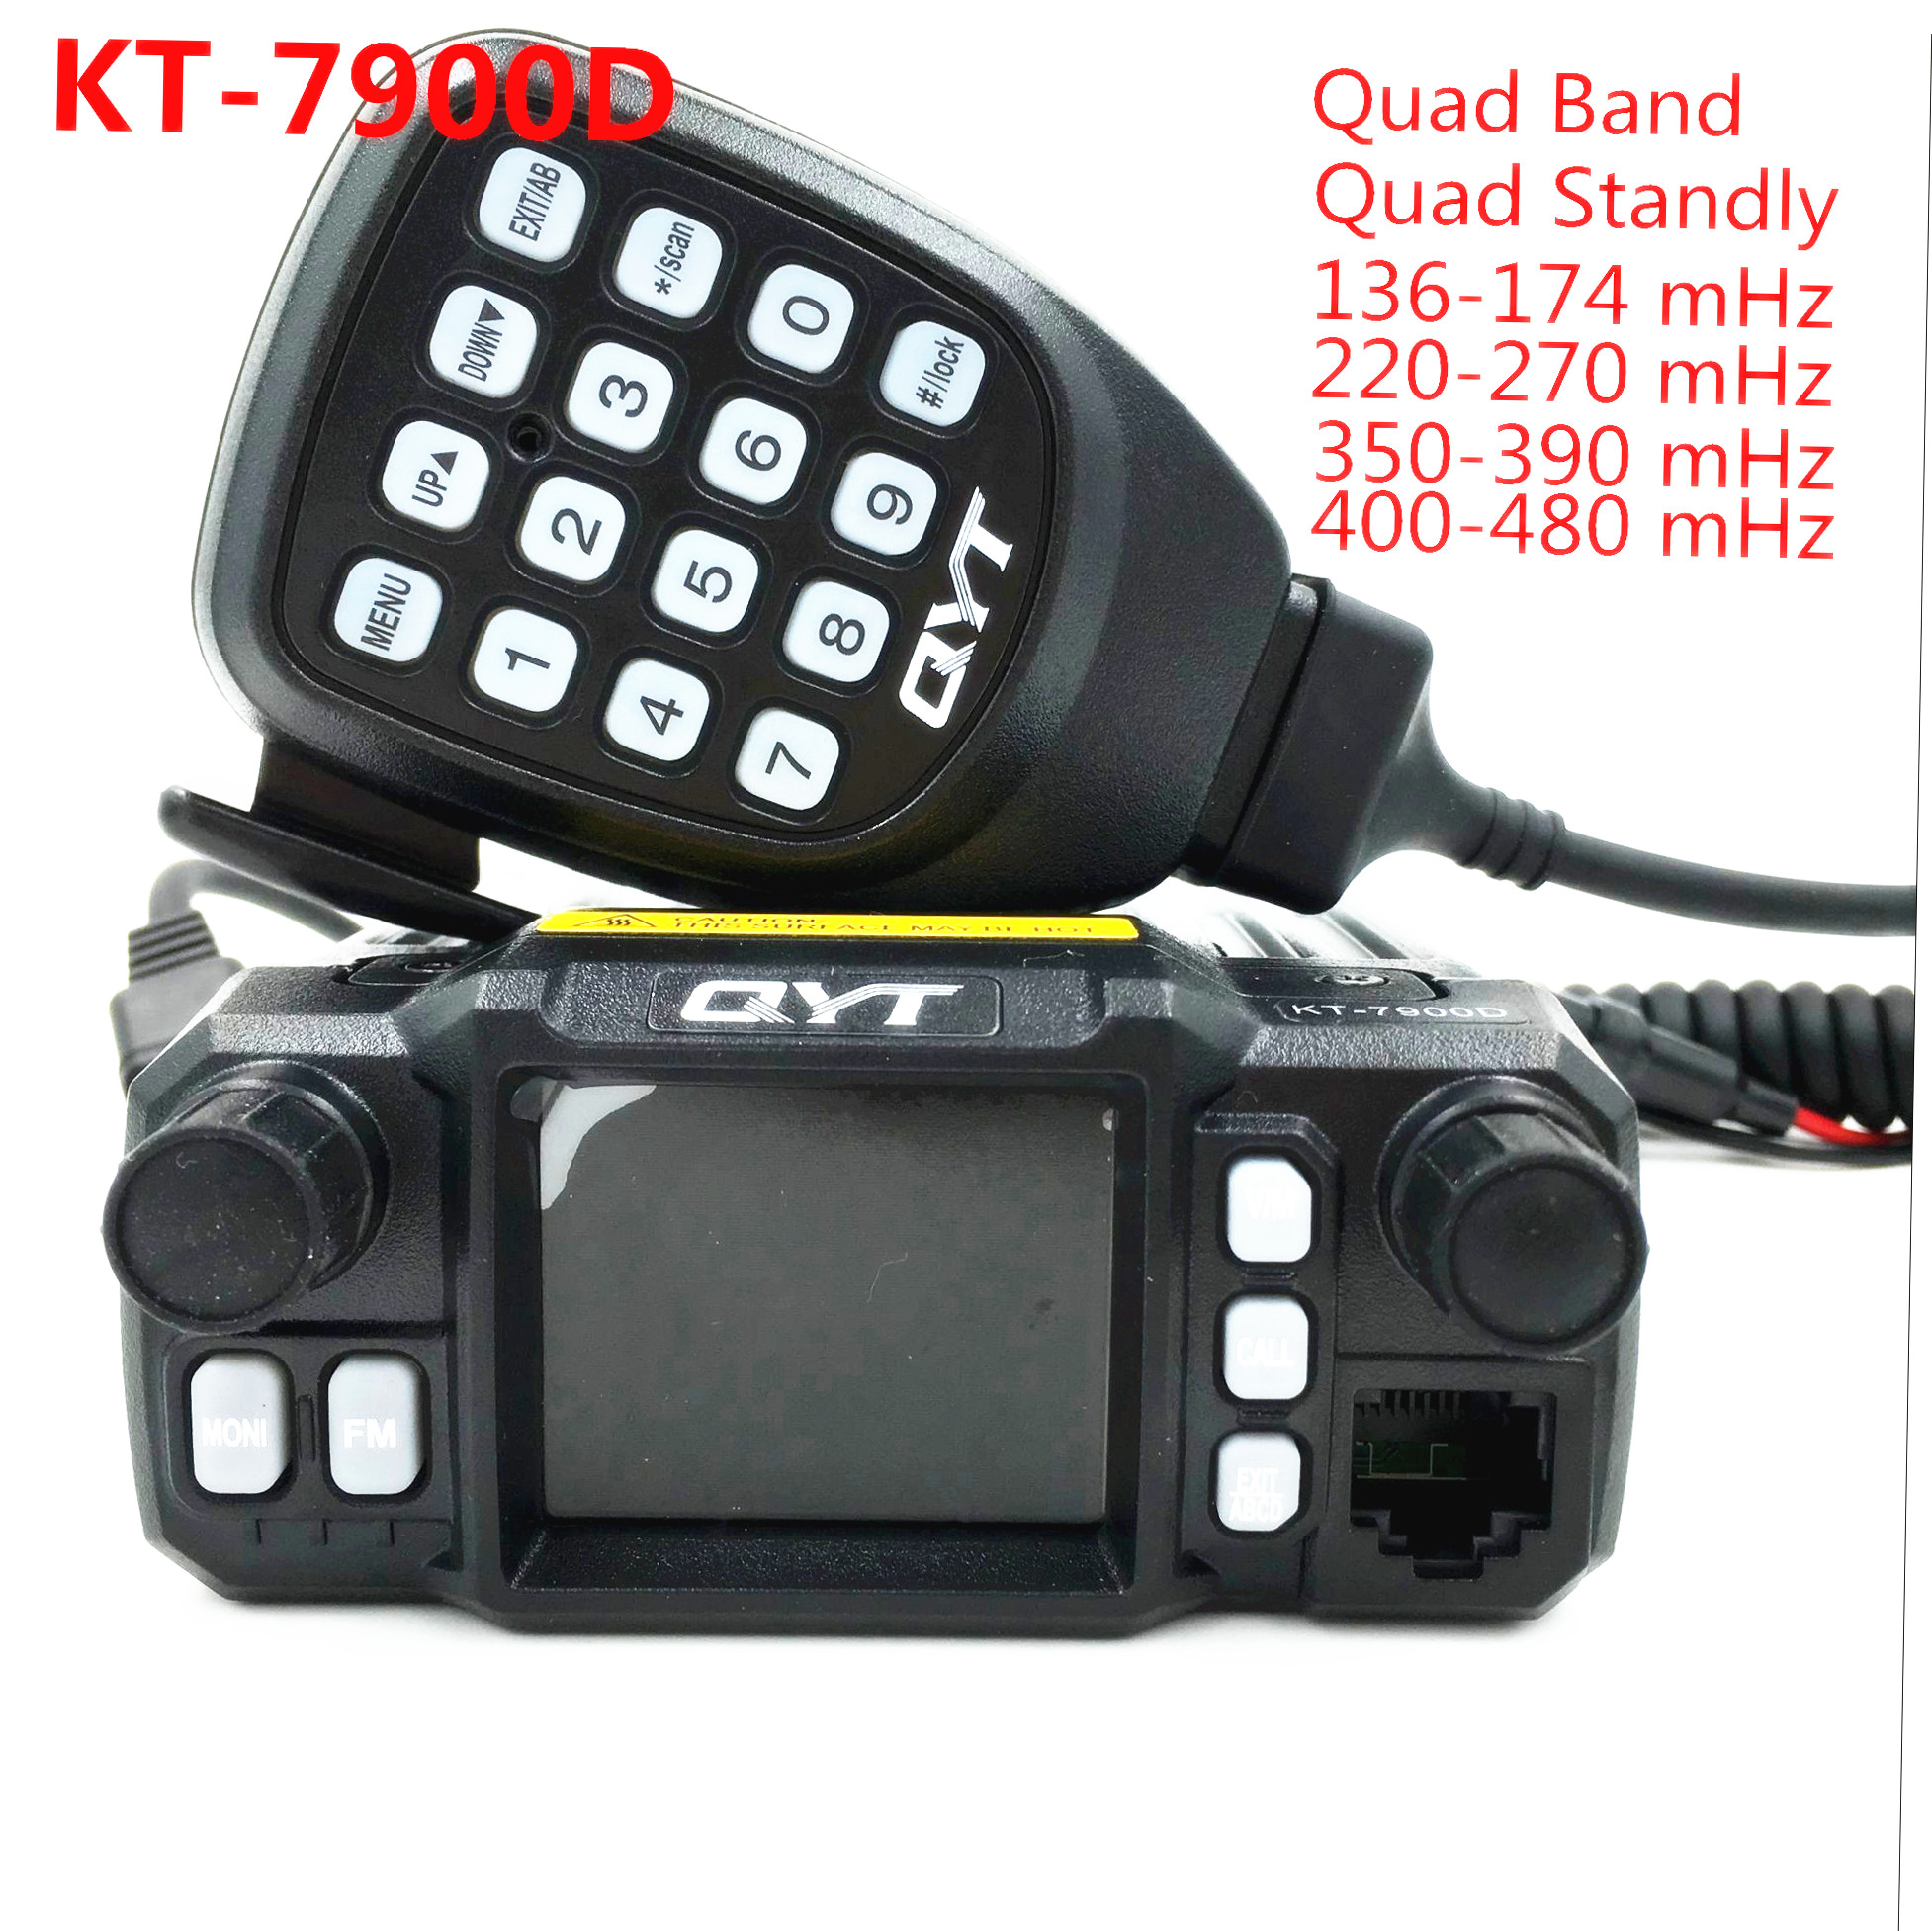 QYT KT-7900D 25W Quad-band Mobilradio-mottaker 144/220/350 / 440MHZ 25W Ham Car Mobile Radio